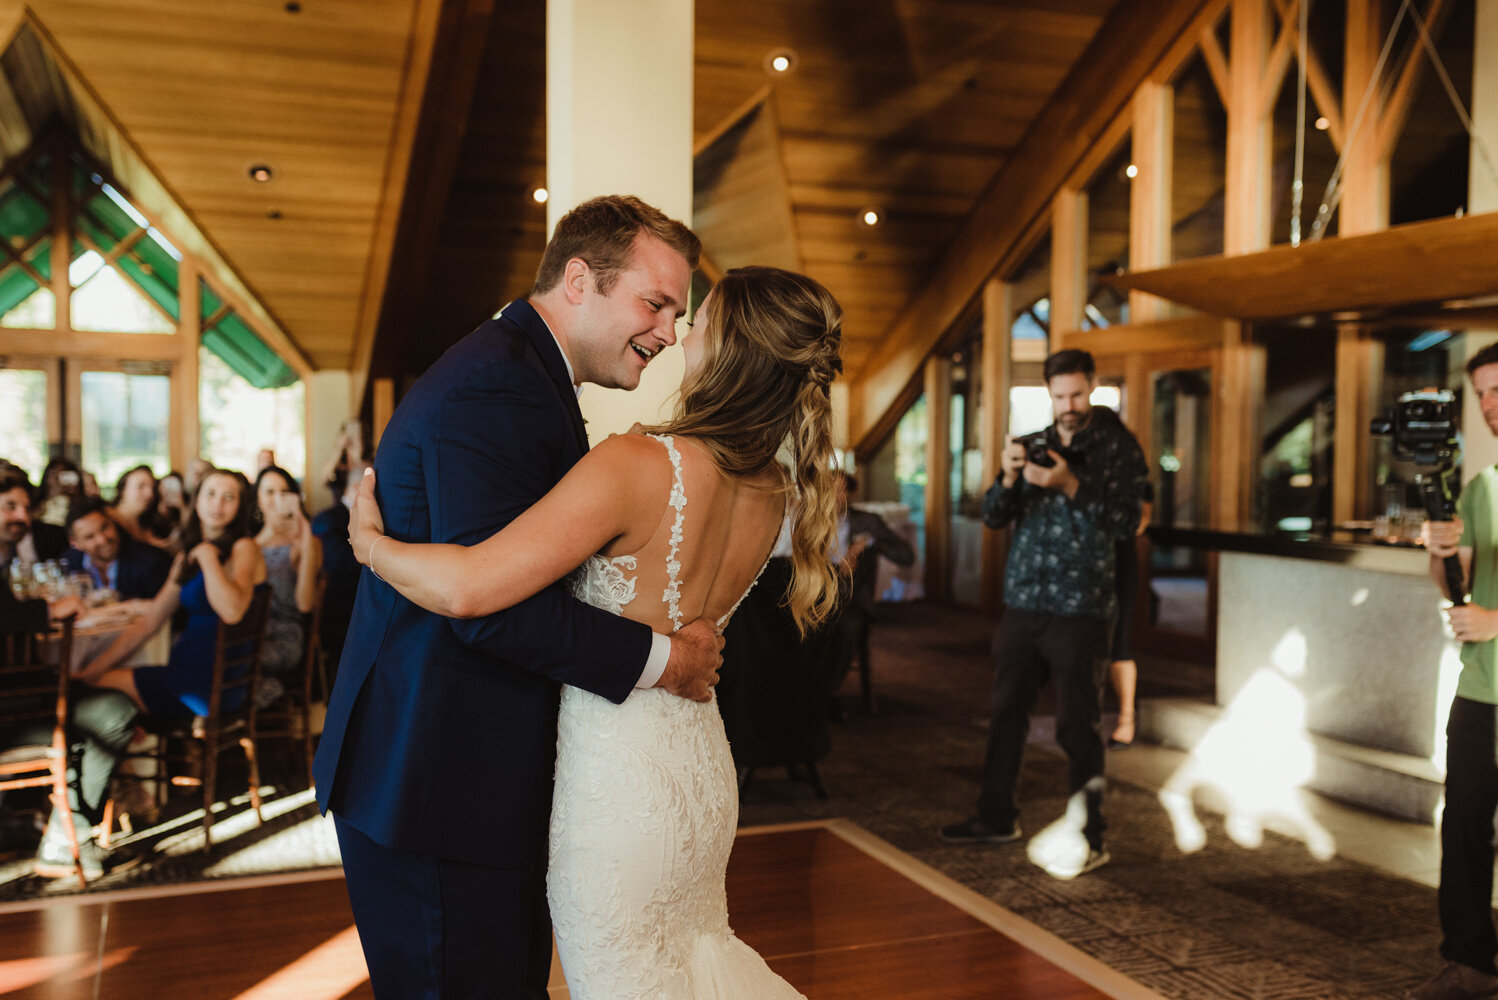 Edgewood Tahoe Wedding, photo of groom during his first dance